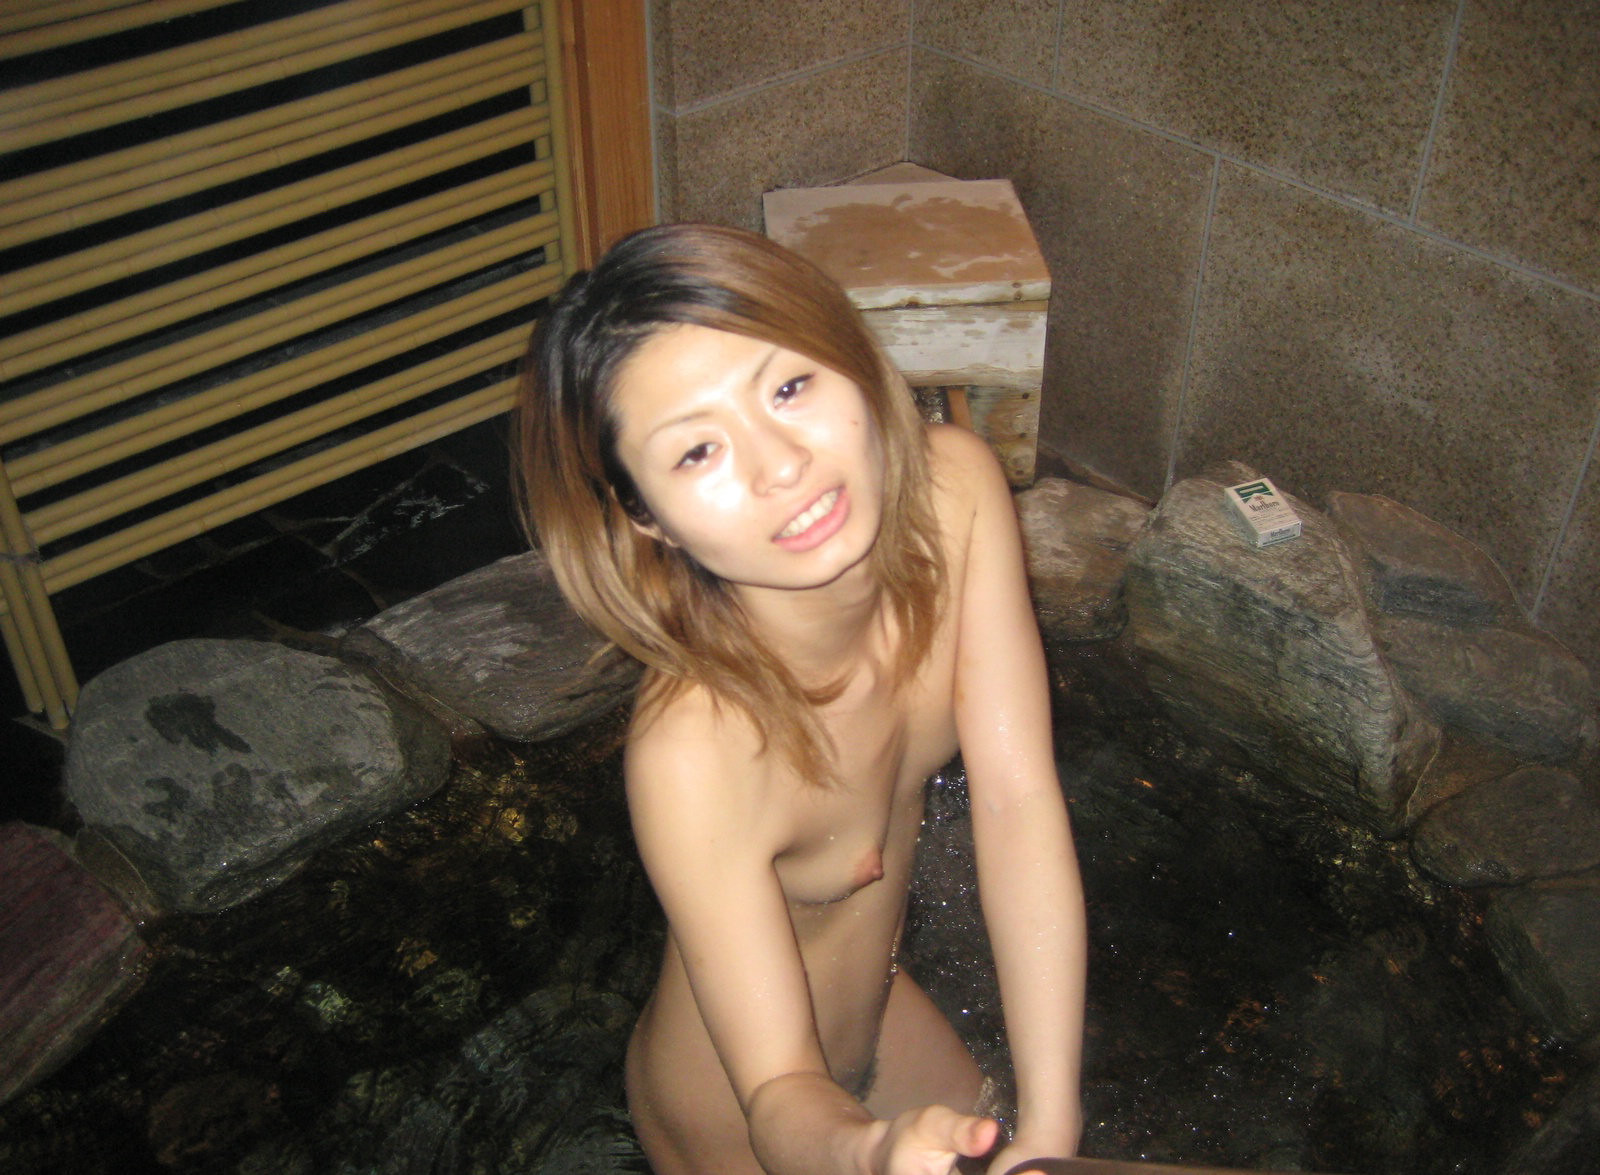 japanese amateur cute Cute Japanese girlfriend's wet pink pussy and blow job photos leaked (20pix)